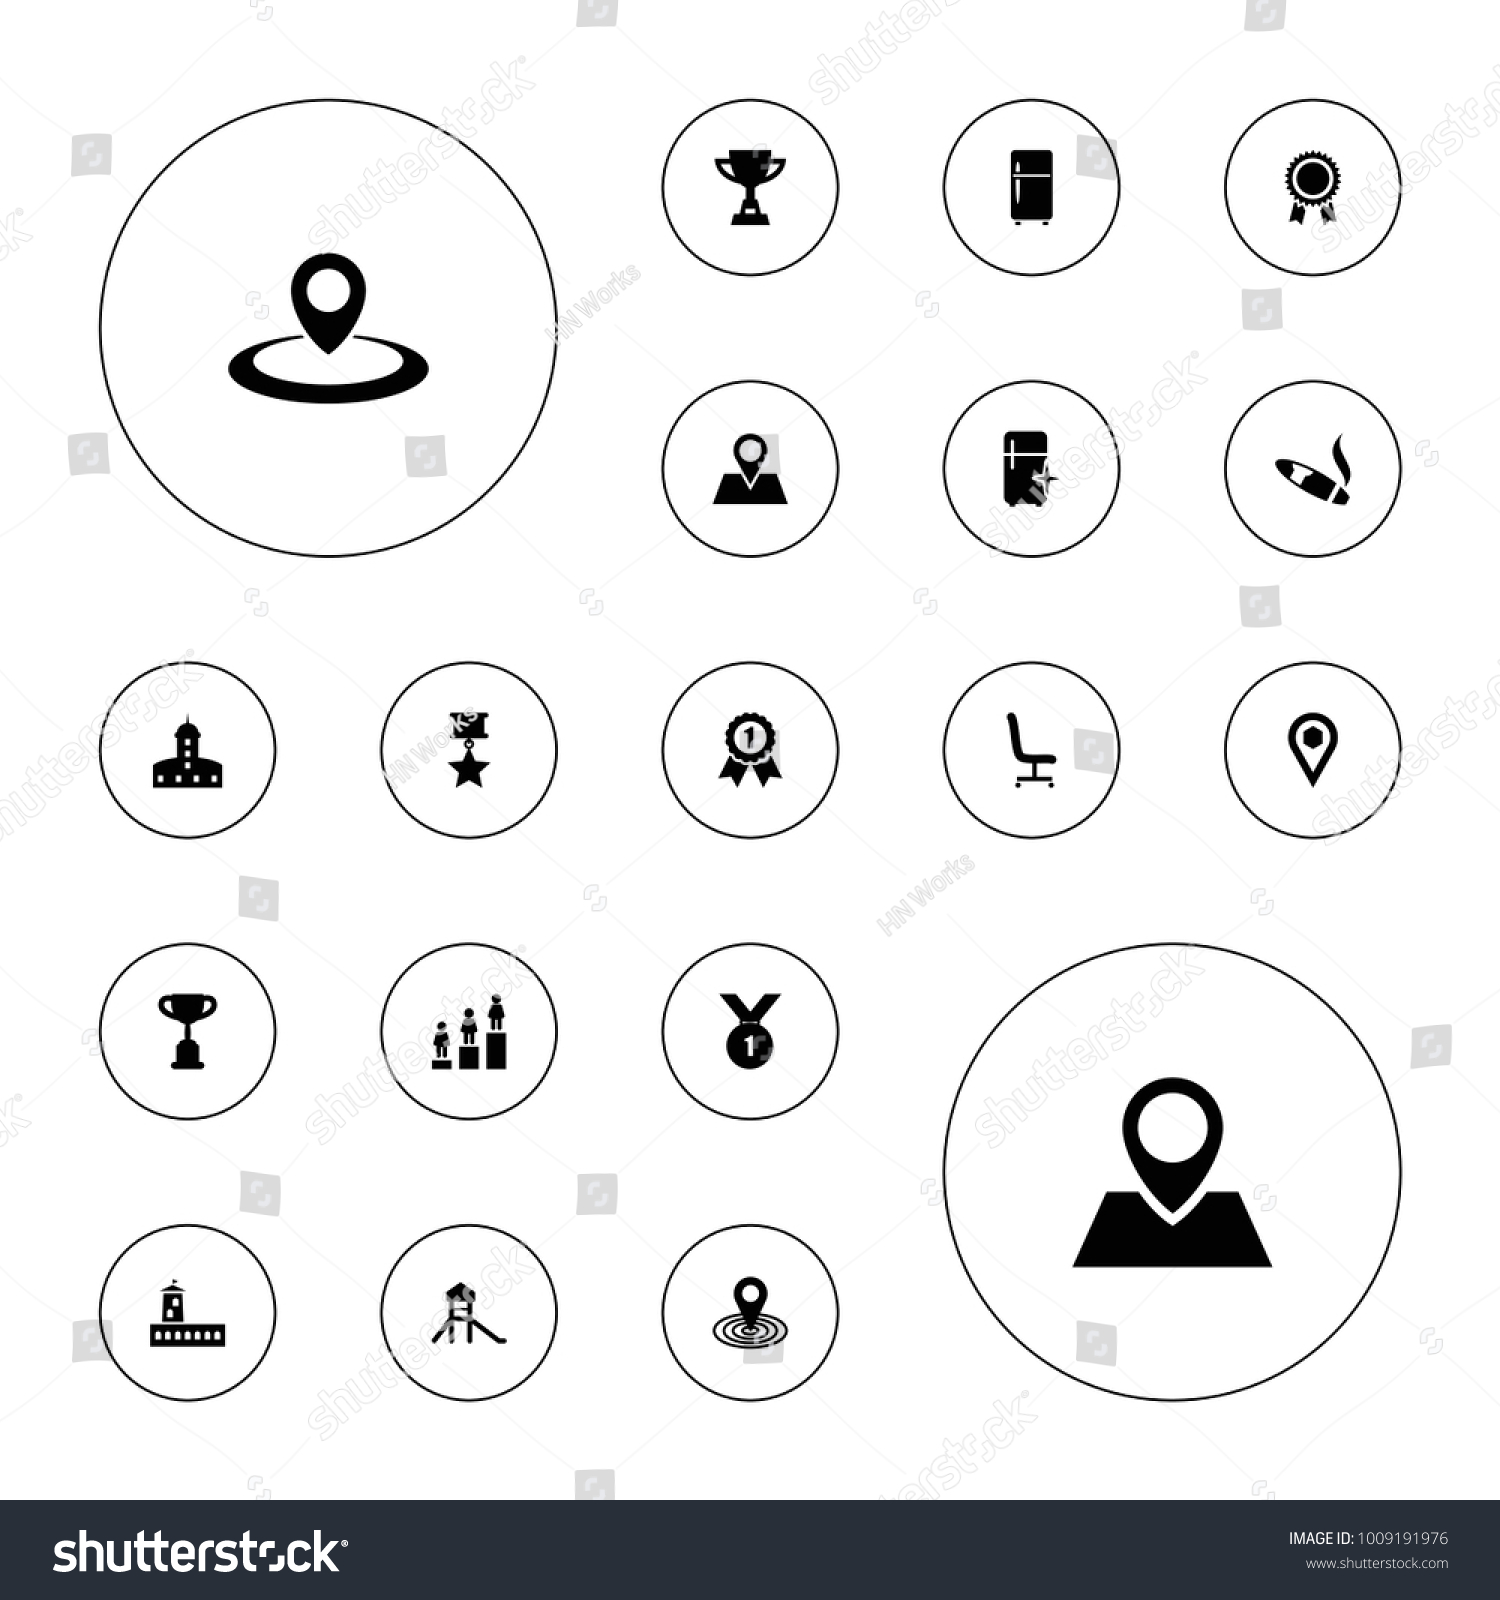 Editable vector place icons castle clean stock vector 1009191976 editable vector place icons castle clean fridge ranking map location trophy biocorpaavc Image collections